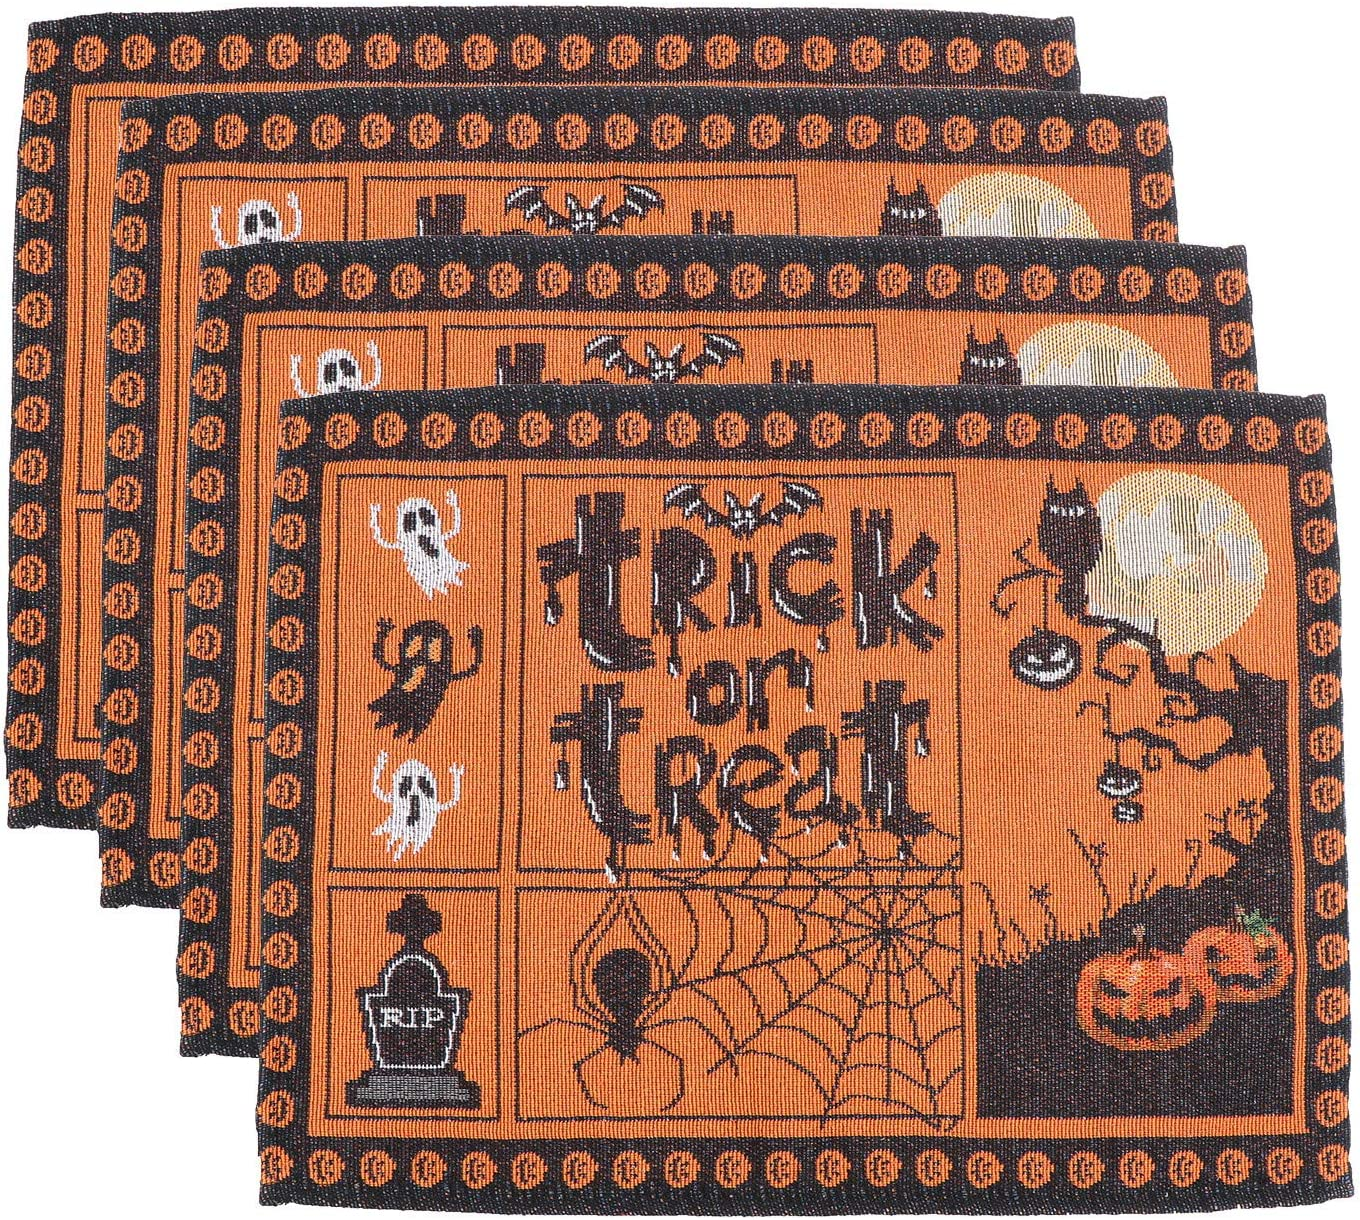 HEMOTON Halloween Placemats Set of 4 Heat-Resistant Dinner Table Mats Pads 12x18 in Ghost Pumpkin Pattern Linen Placemats Perfect for Halloween Dinner Parties and Scary Movie Nights